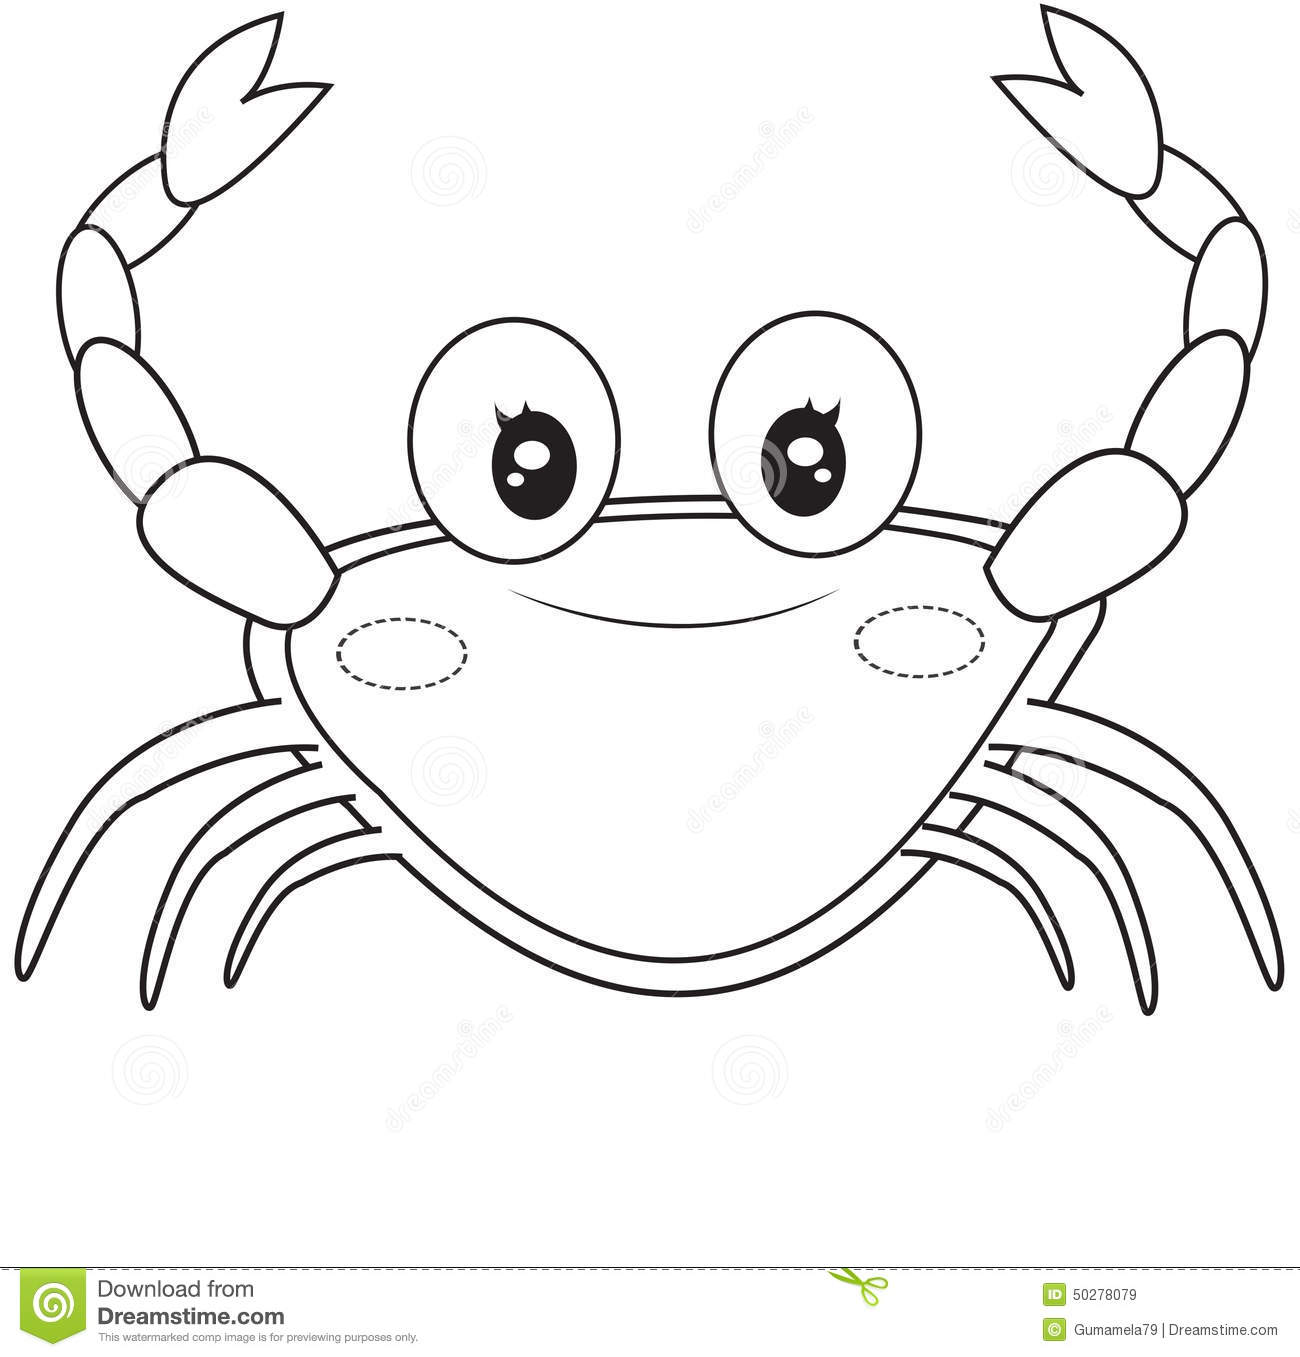 royalty free illustration download crab coloring page